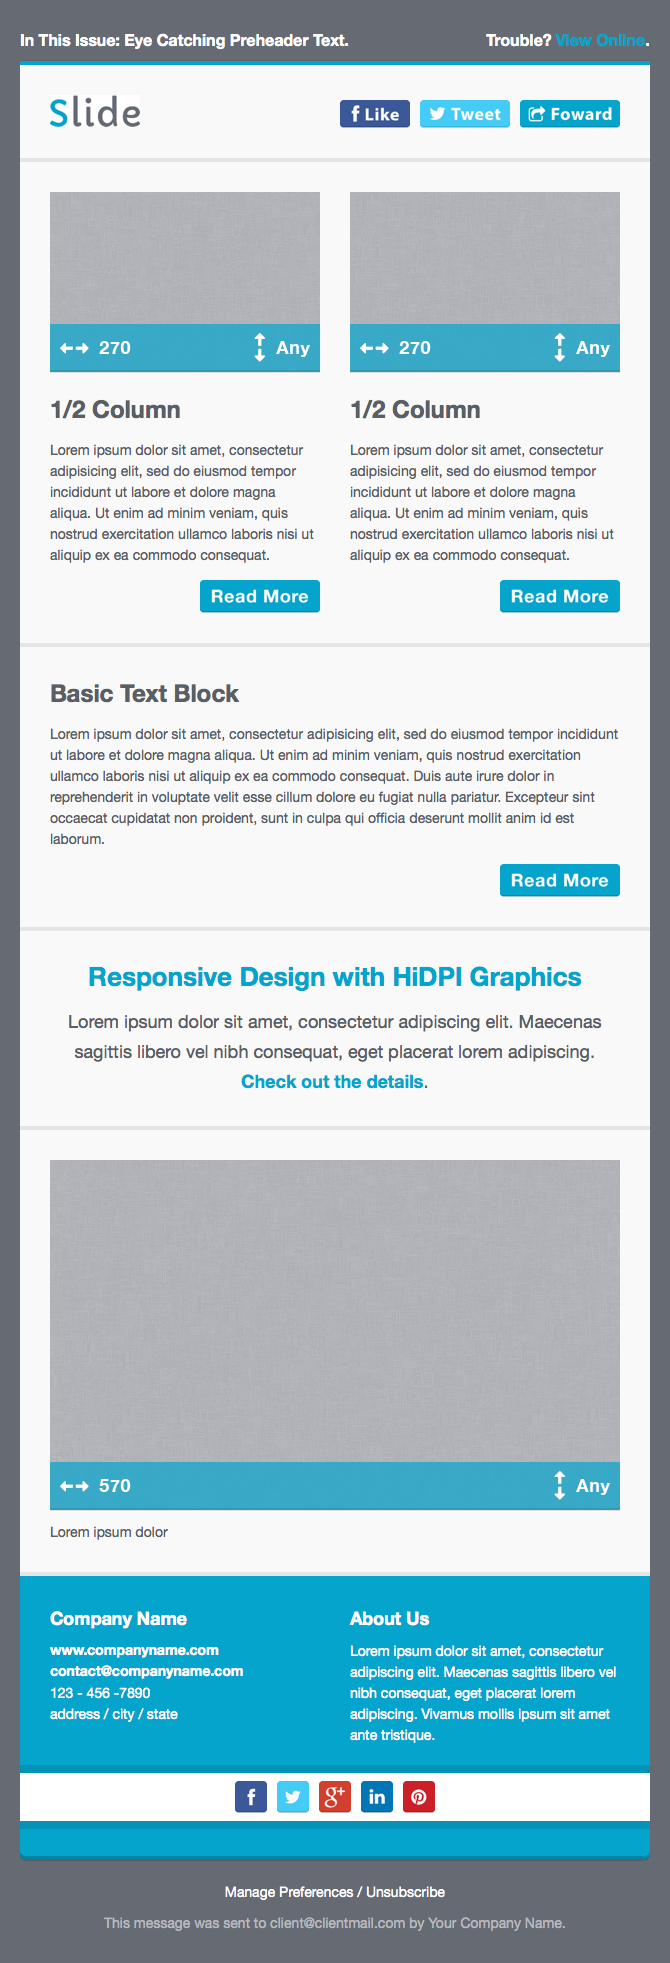 how to make a responsive email template - slide responsive email template by creekjumper themeforest